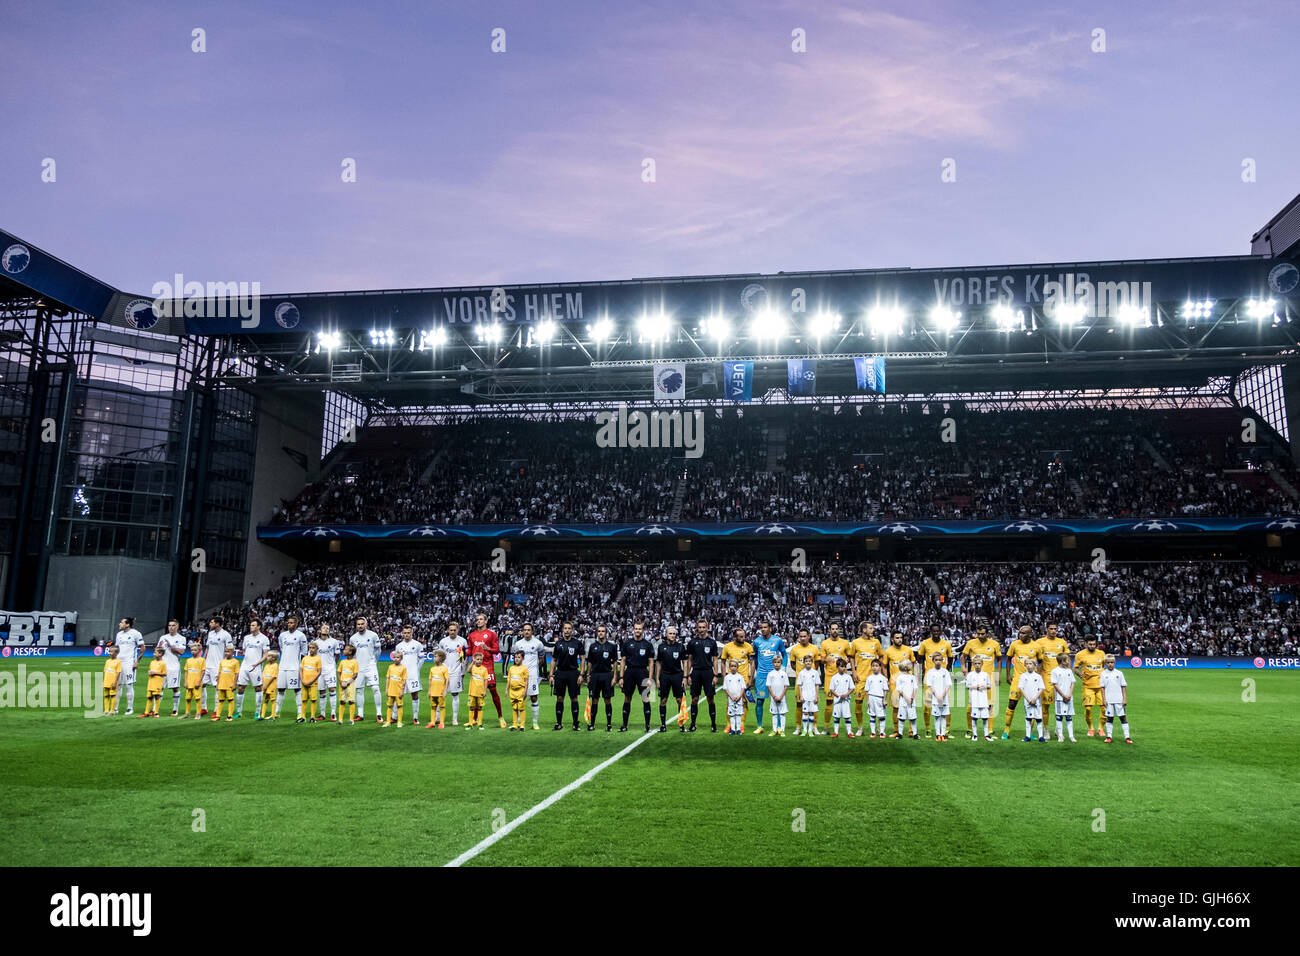 Denmark, Copenhagen, August 16th 2016. The two teams line up at the UEFA Champions League play-off match between Stock Photo